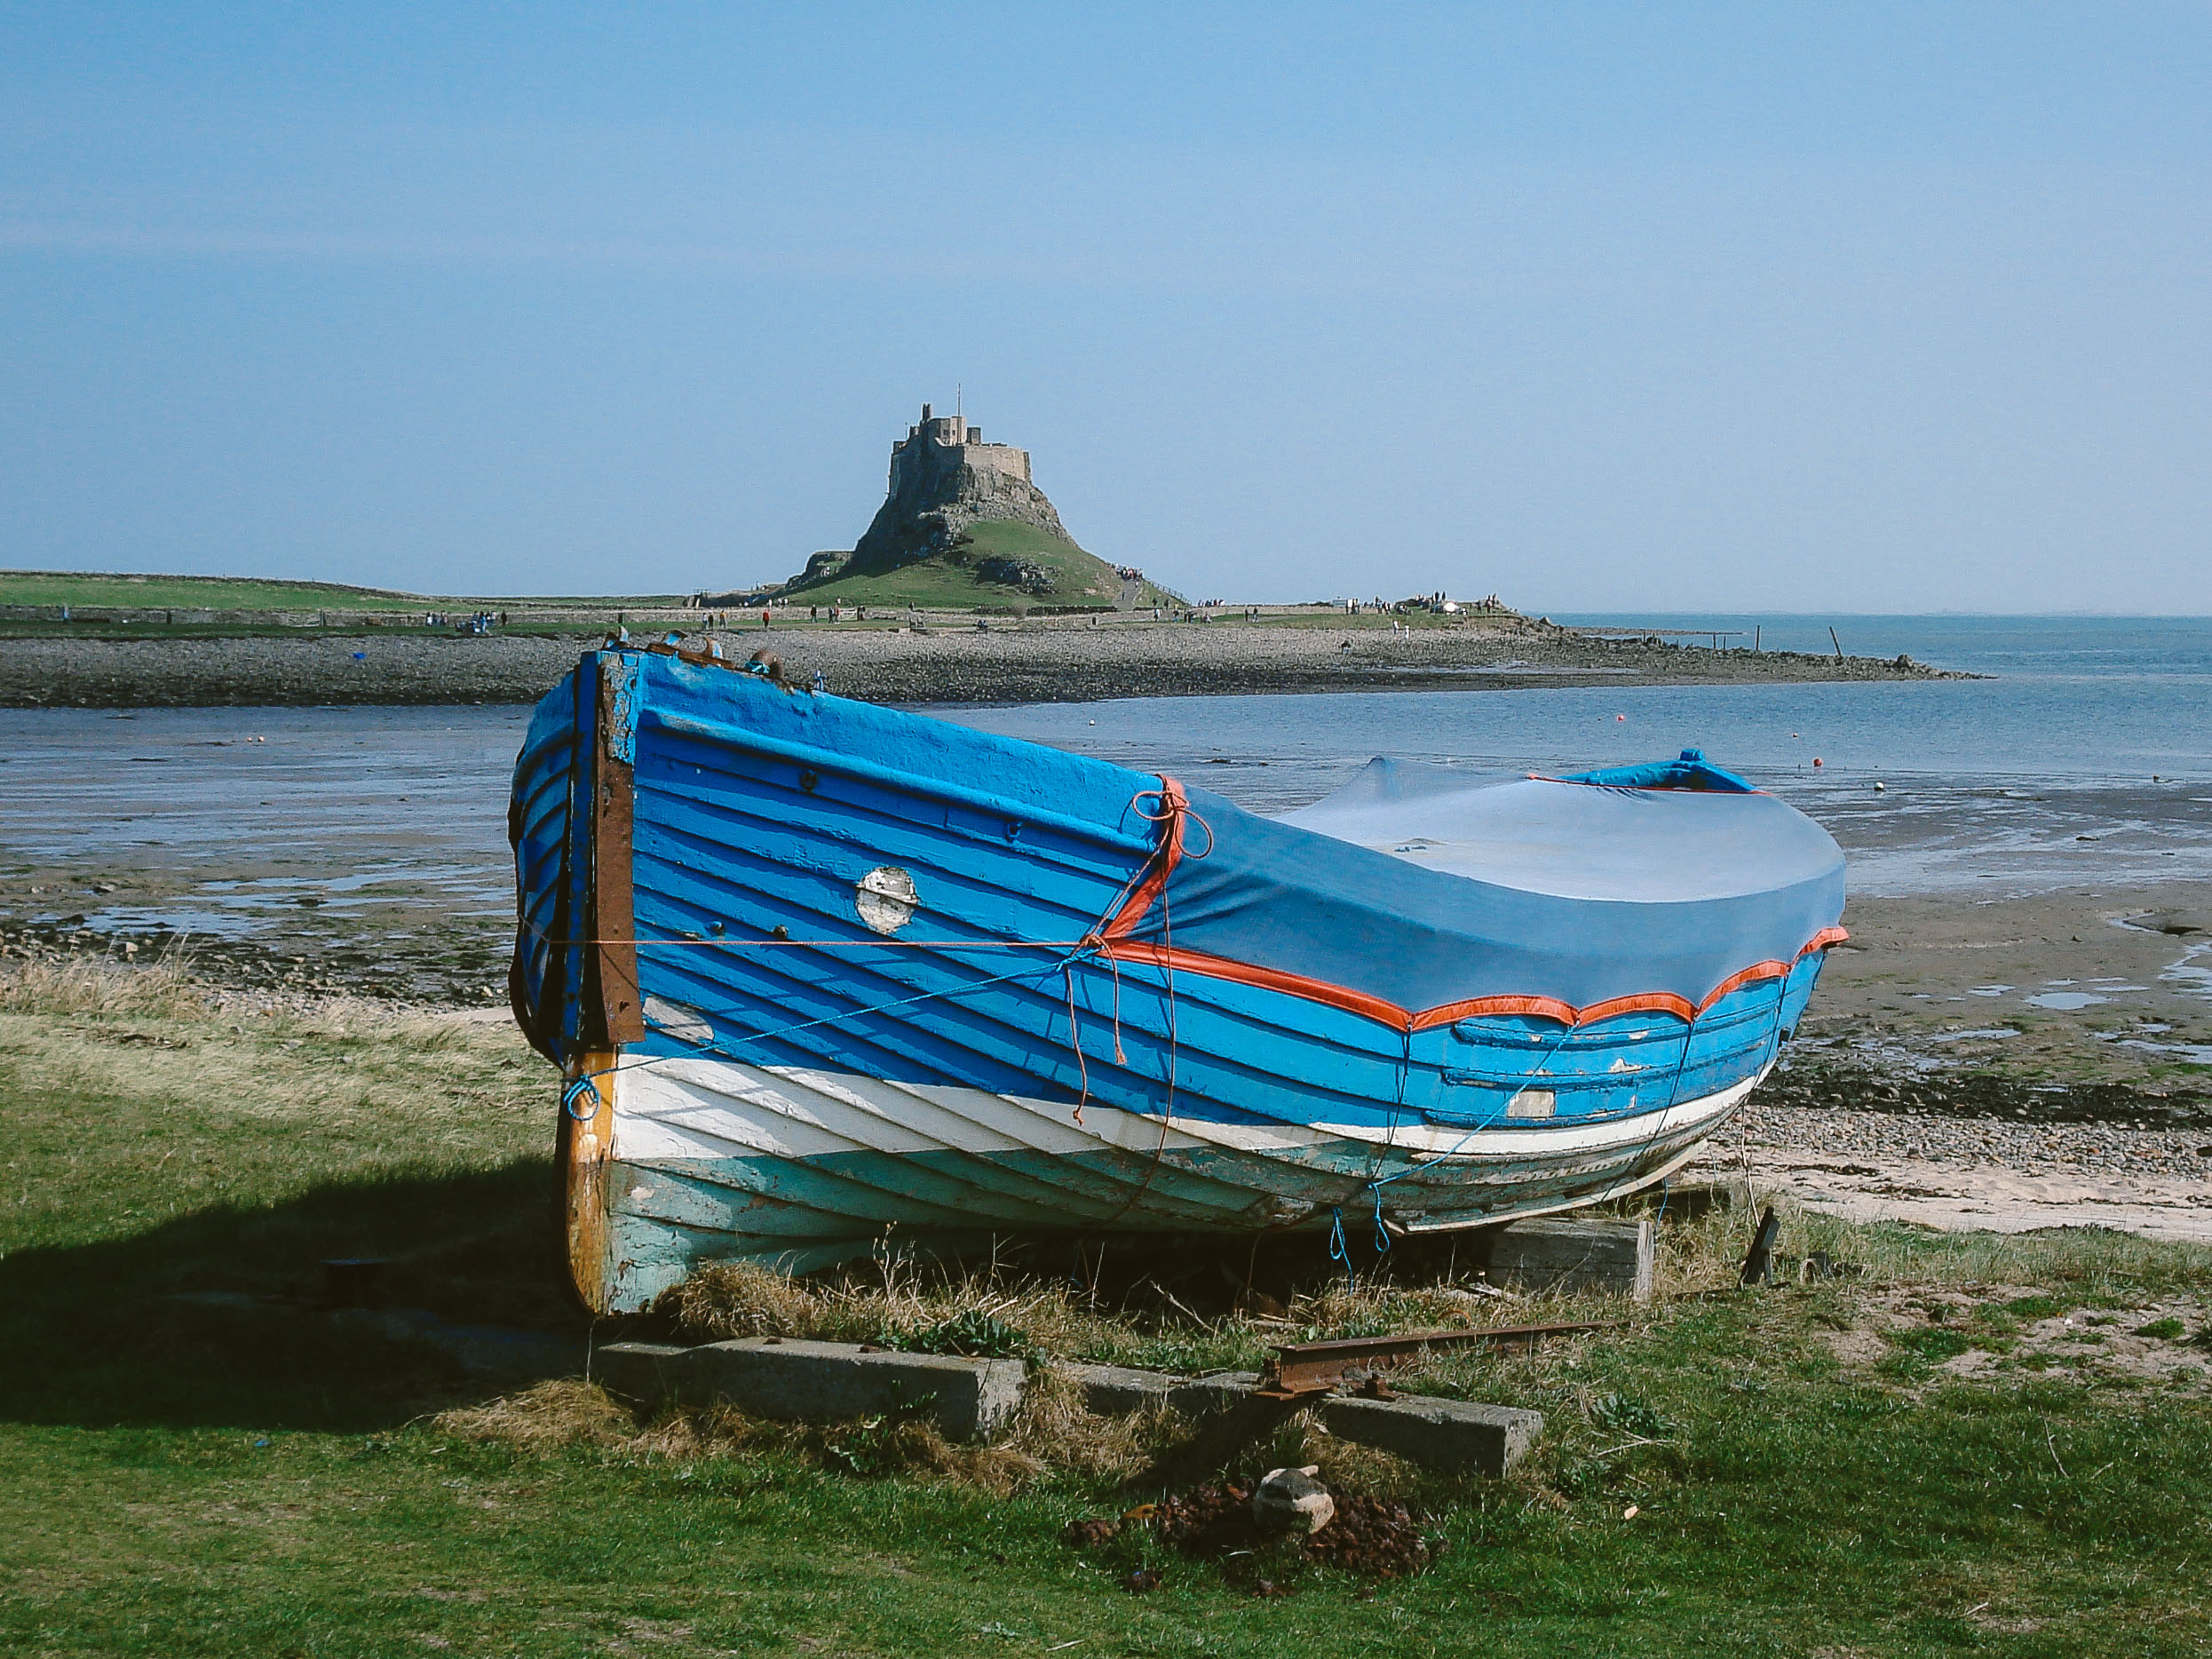 A fishing boat with Lindisfarne Castle in the background